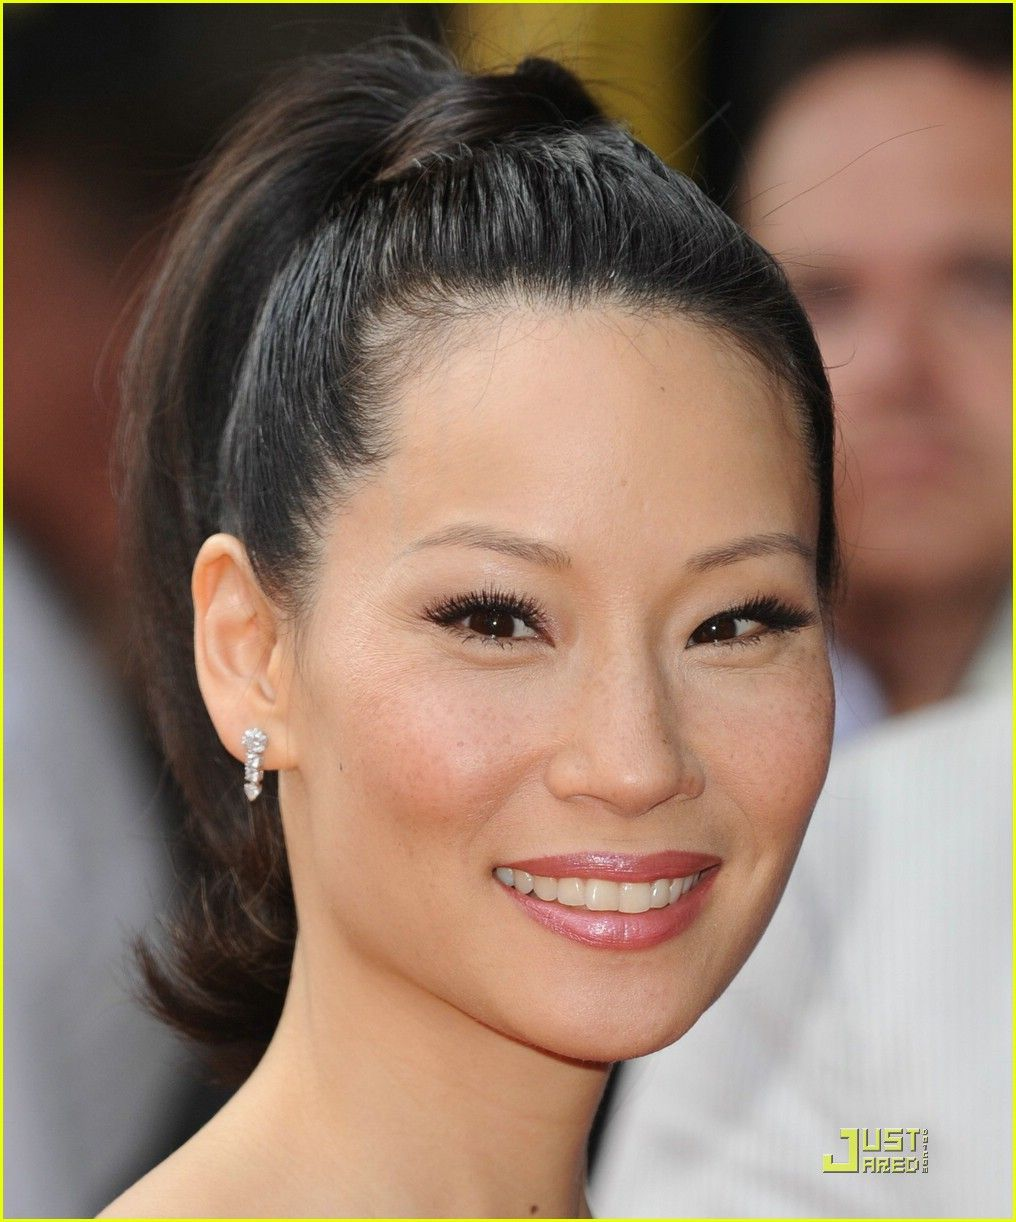 lucy liu makeup tutorial